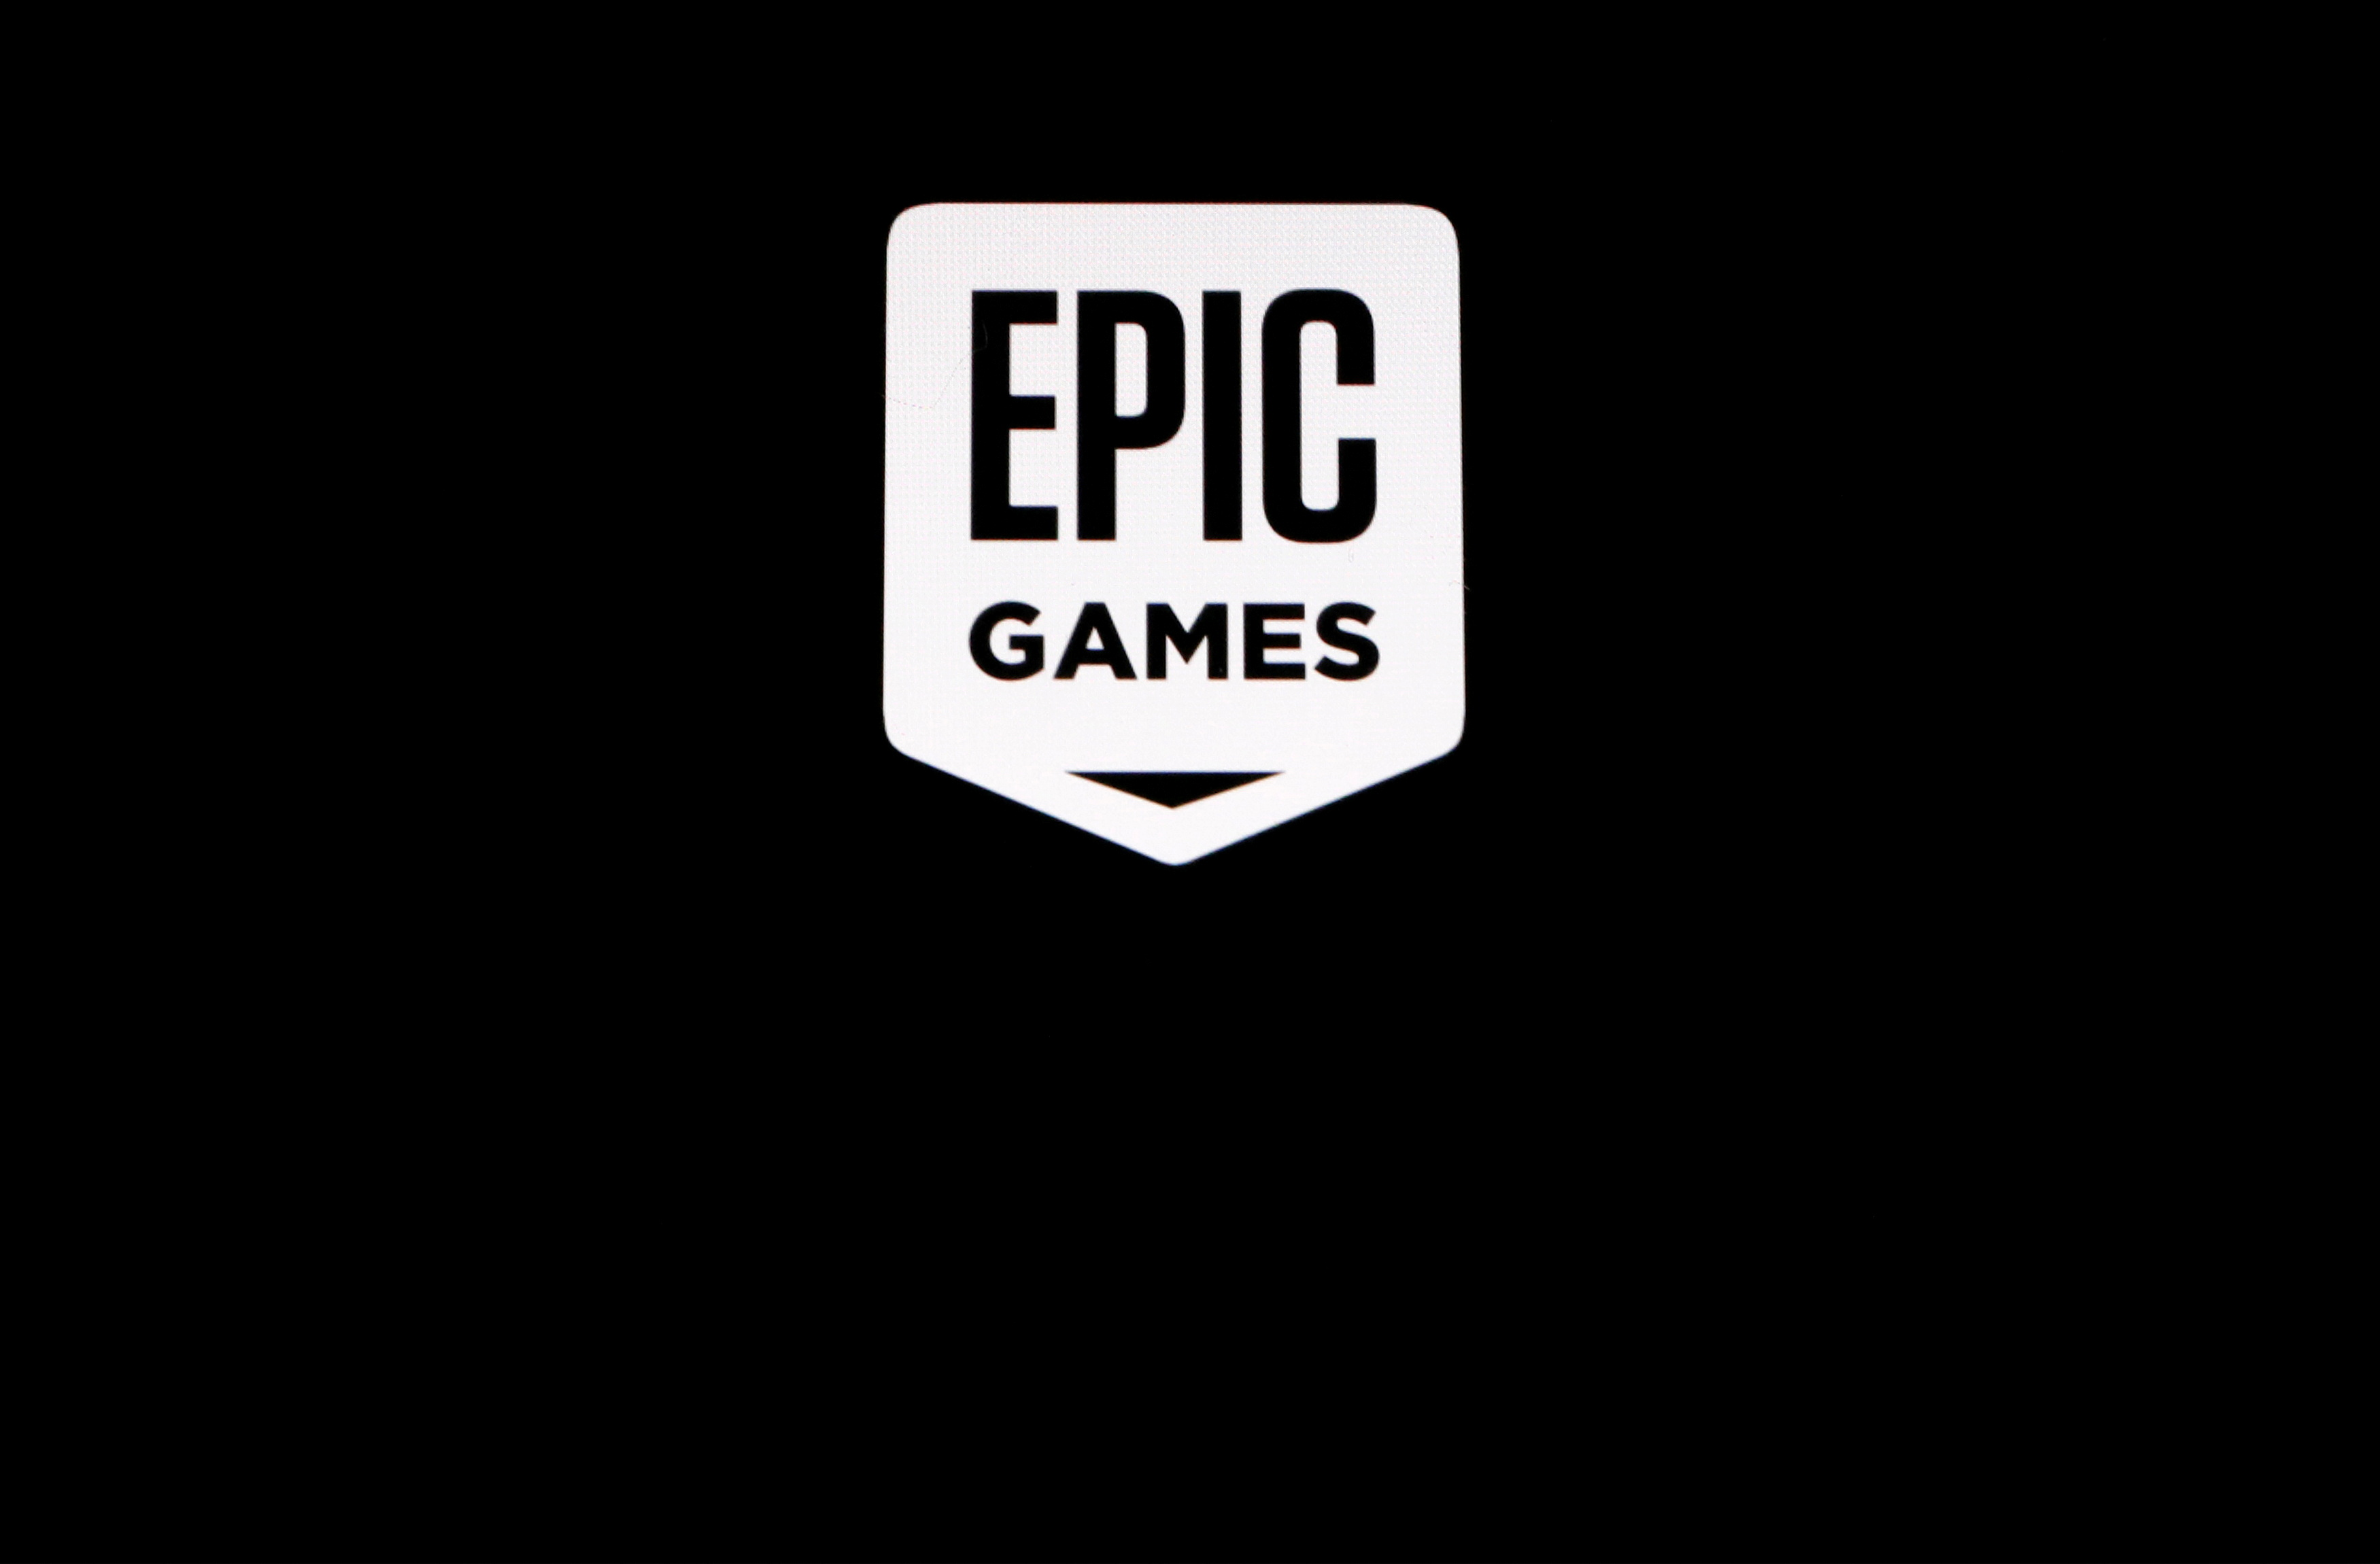 The Epic Games logo, maker of the popular video game